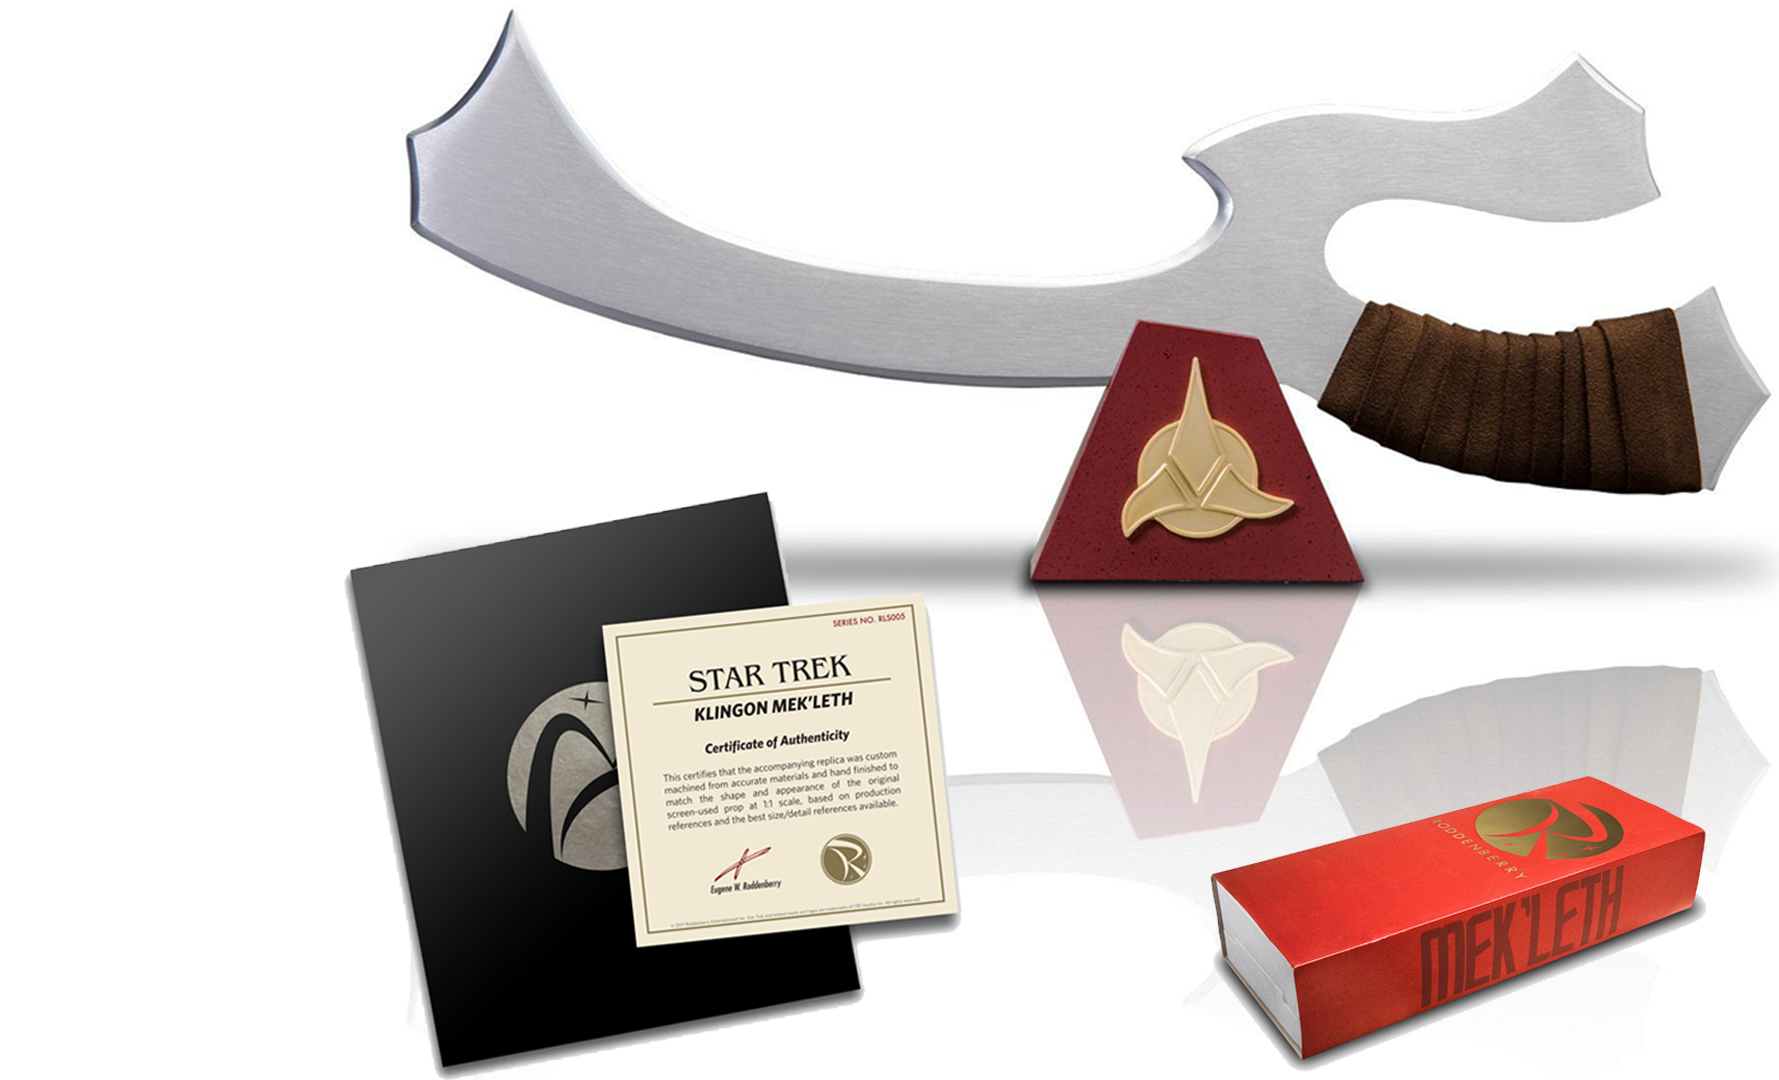 KLINGON MEK'LETH Autographed by MICHAEL DORN - Available from Roddenberry Entertainment Retail Value: $300